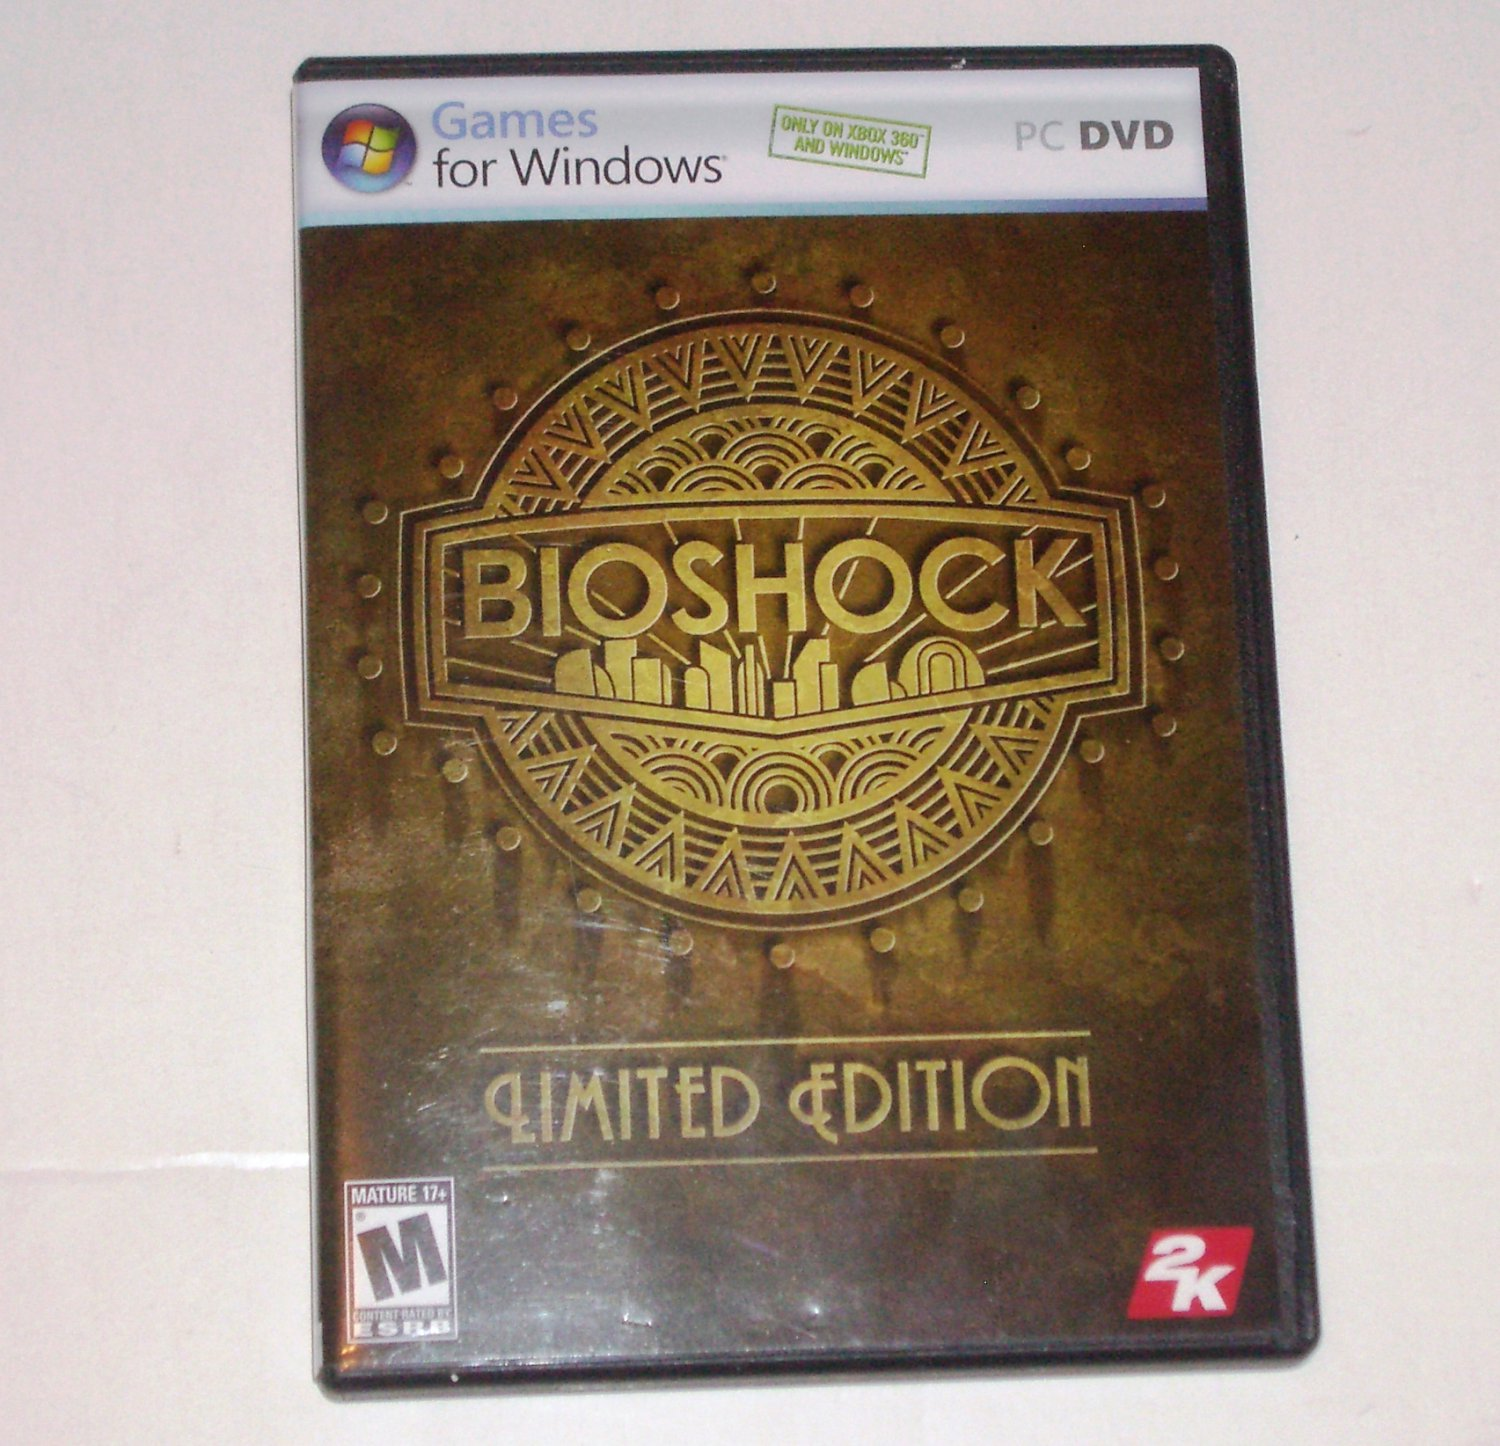 Bioshock - Limited Edition by 2K Games Video Game for Windows XP or Vista